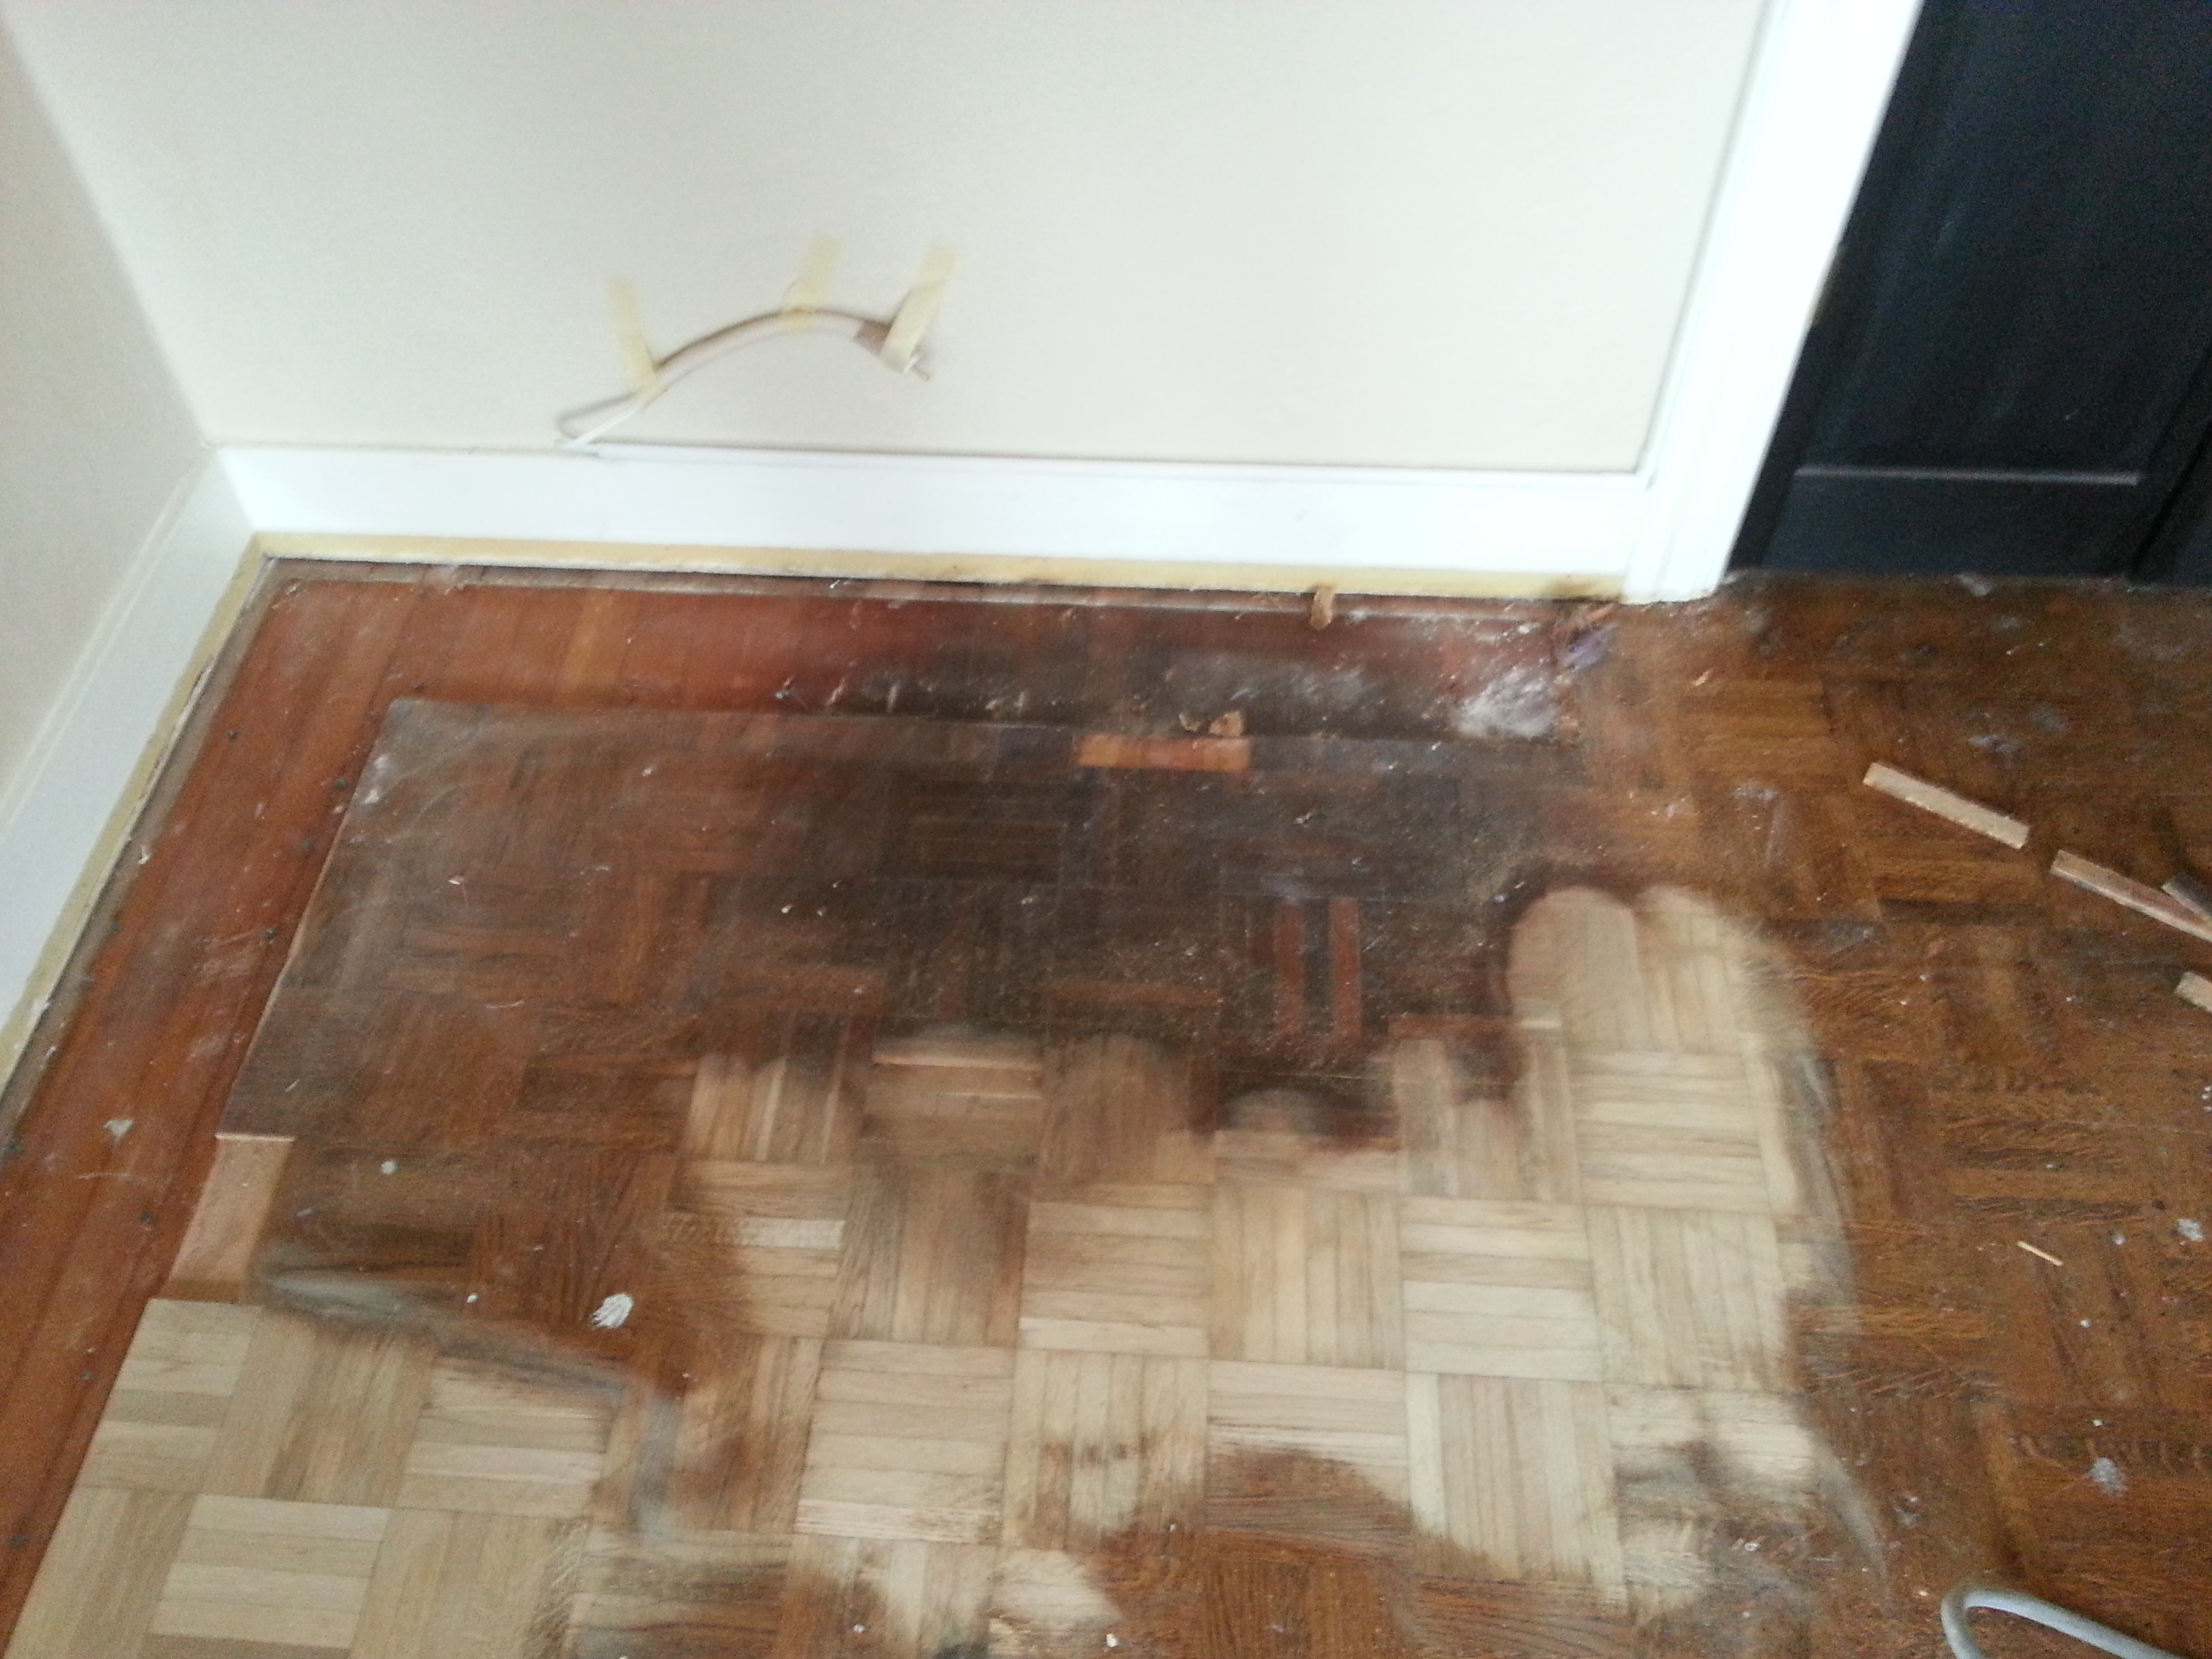 Cost Of Refinishing Hardwood Floors Vs Replacing Of Diy Refinish Hardwood Floors Adventures In Staining My Red Oak with Regard to Diy Refinish Hardwood Floors Refinishing Hardwood Flooring Floors with Urine Stains Pet without